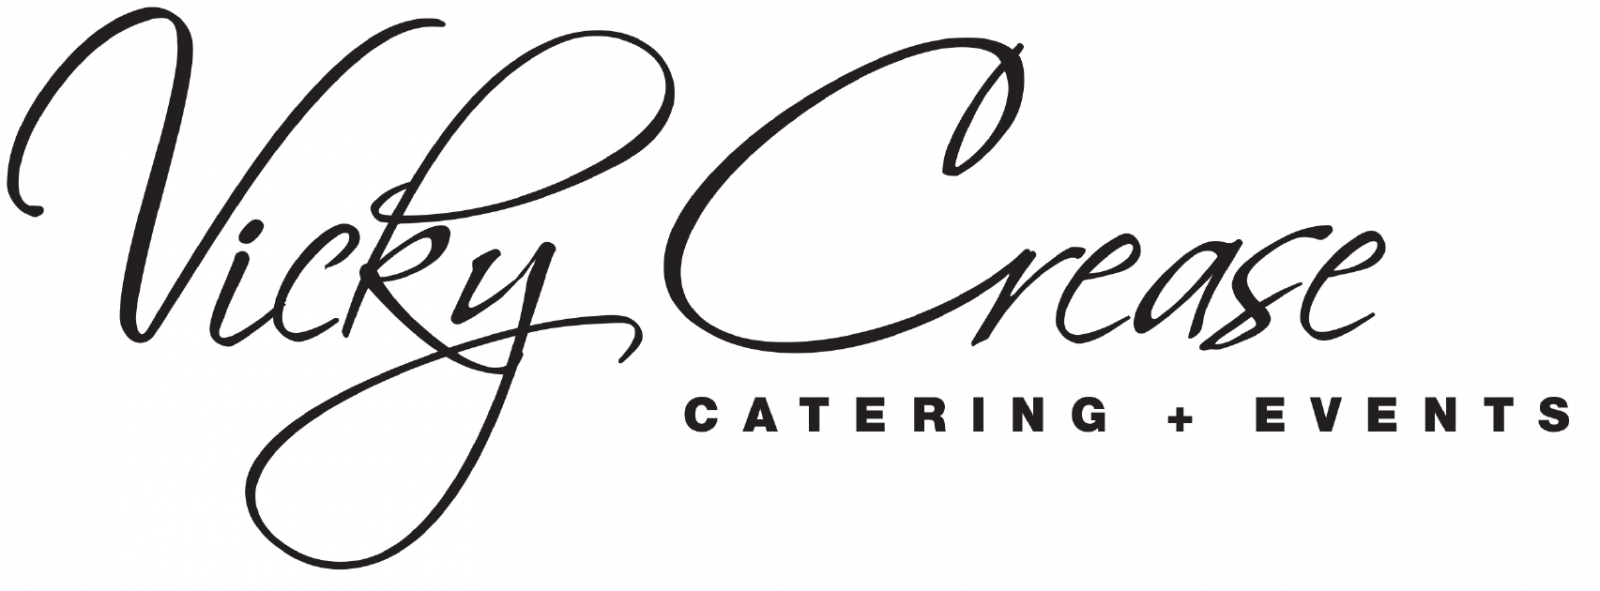 Vicky Crease Catering & Events